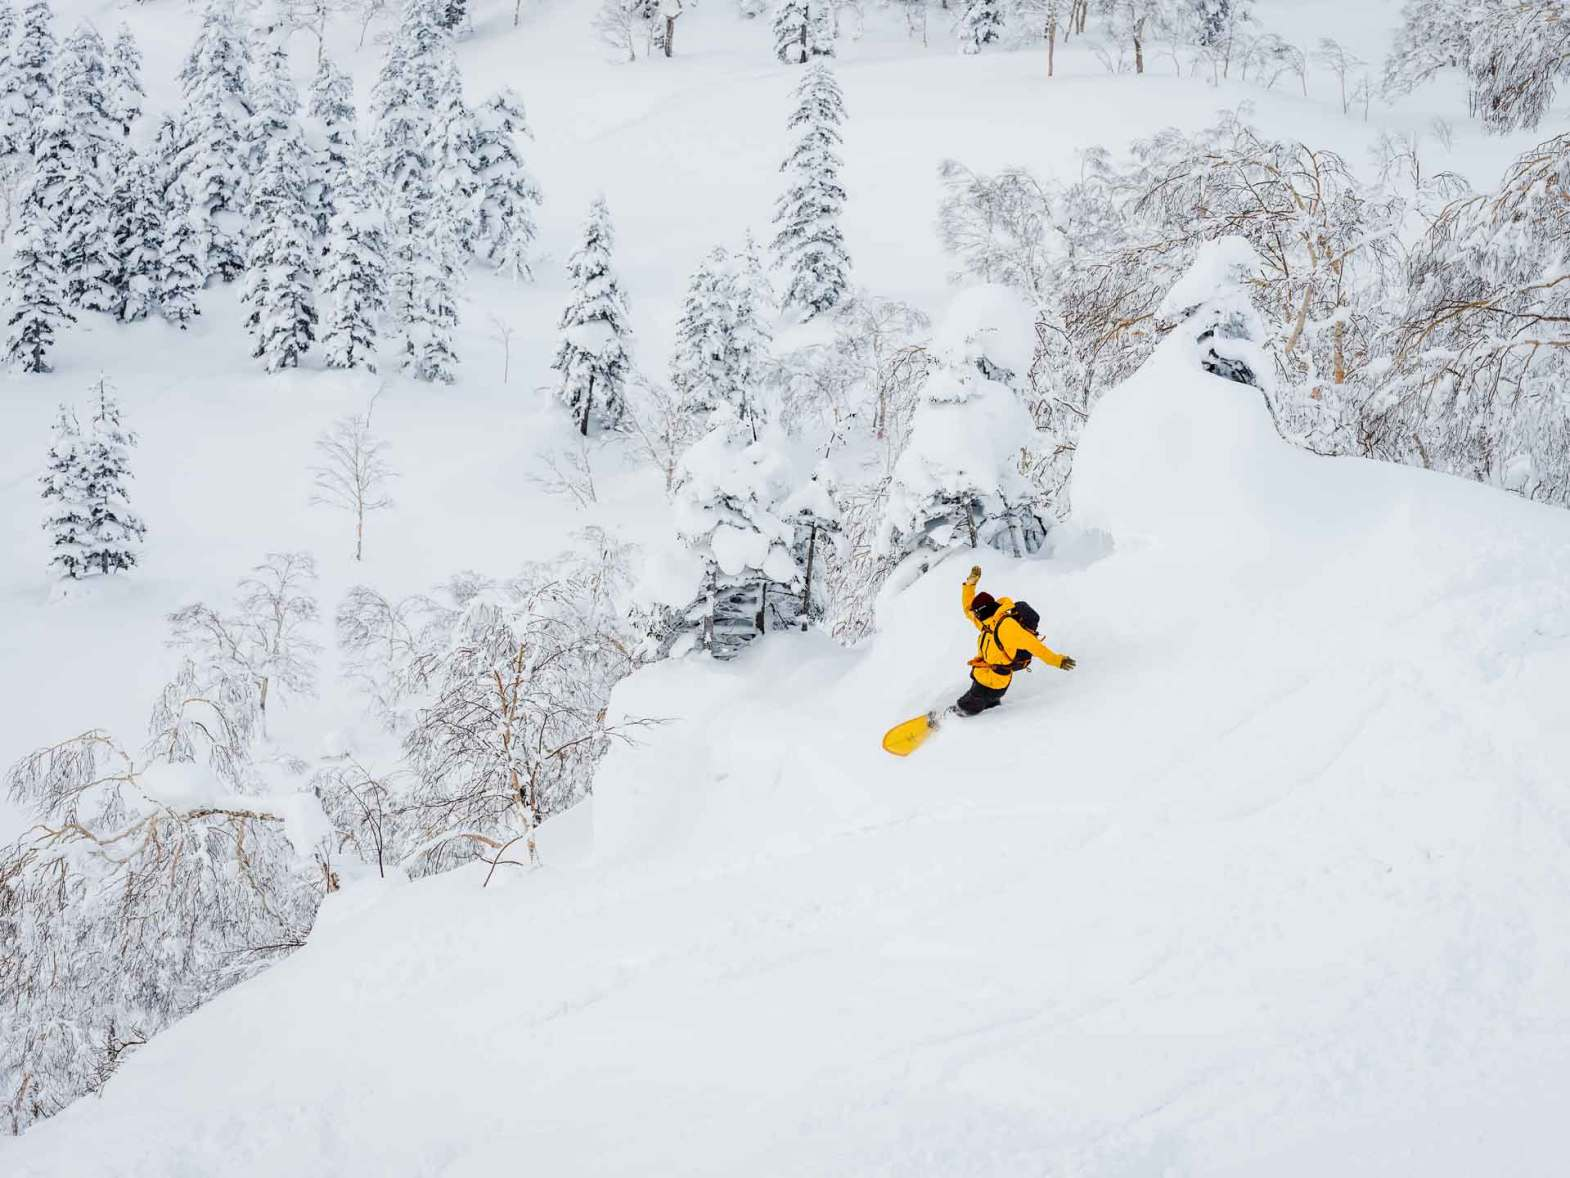 Snowboarder riding through powder on an Elevated SurfCraft board in Japan.